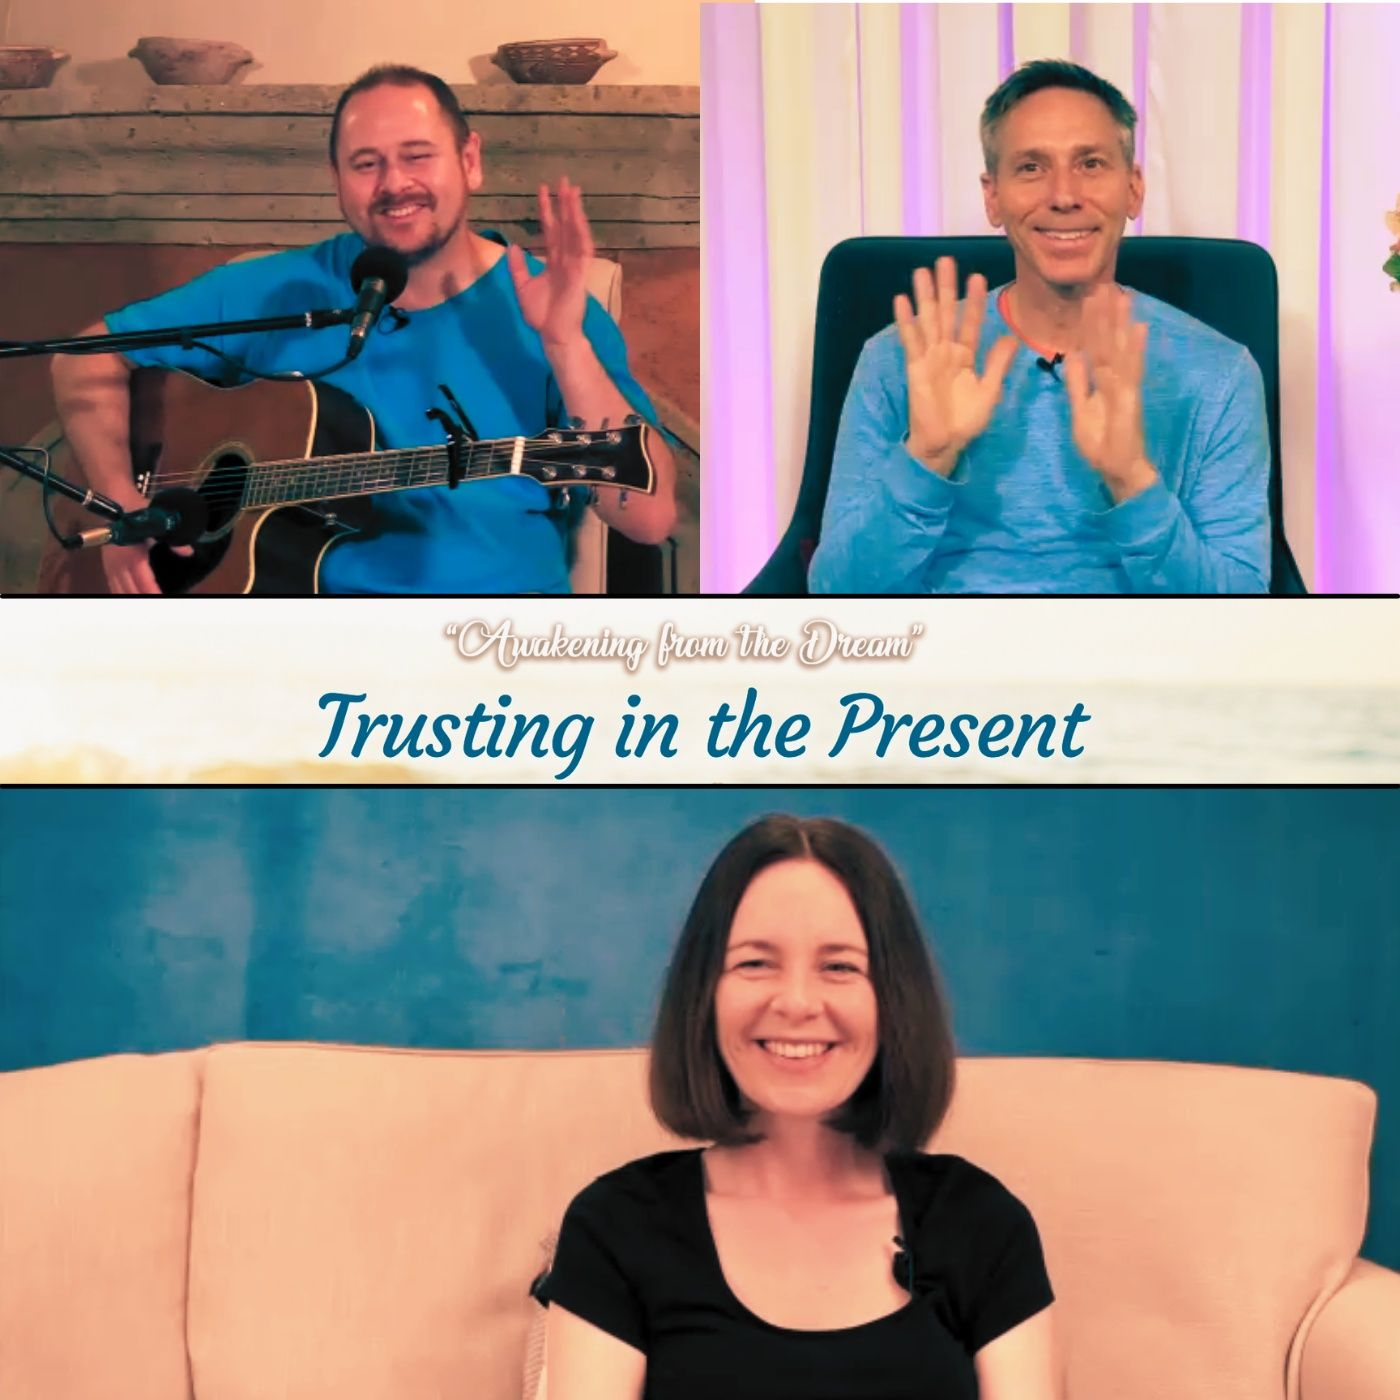 """""""Trusting In the Present"""" Online Retreat - Friday Evenings Panel Session with Emily Alexander, Erik Archbold and Greg Donner"""